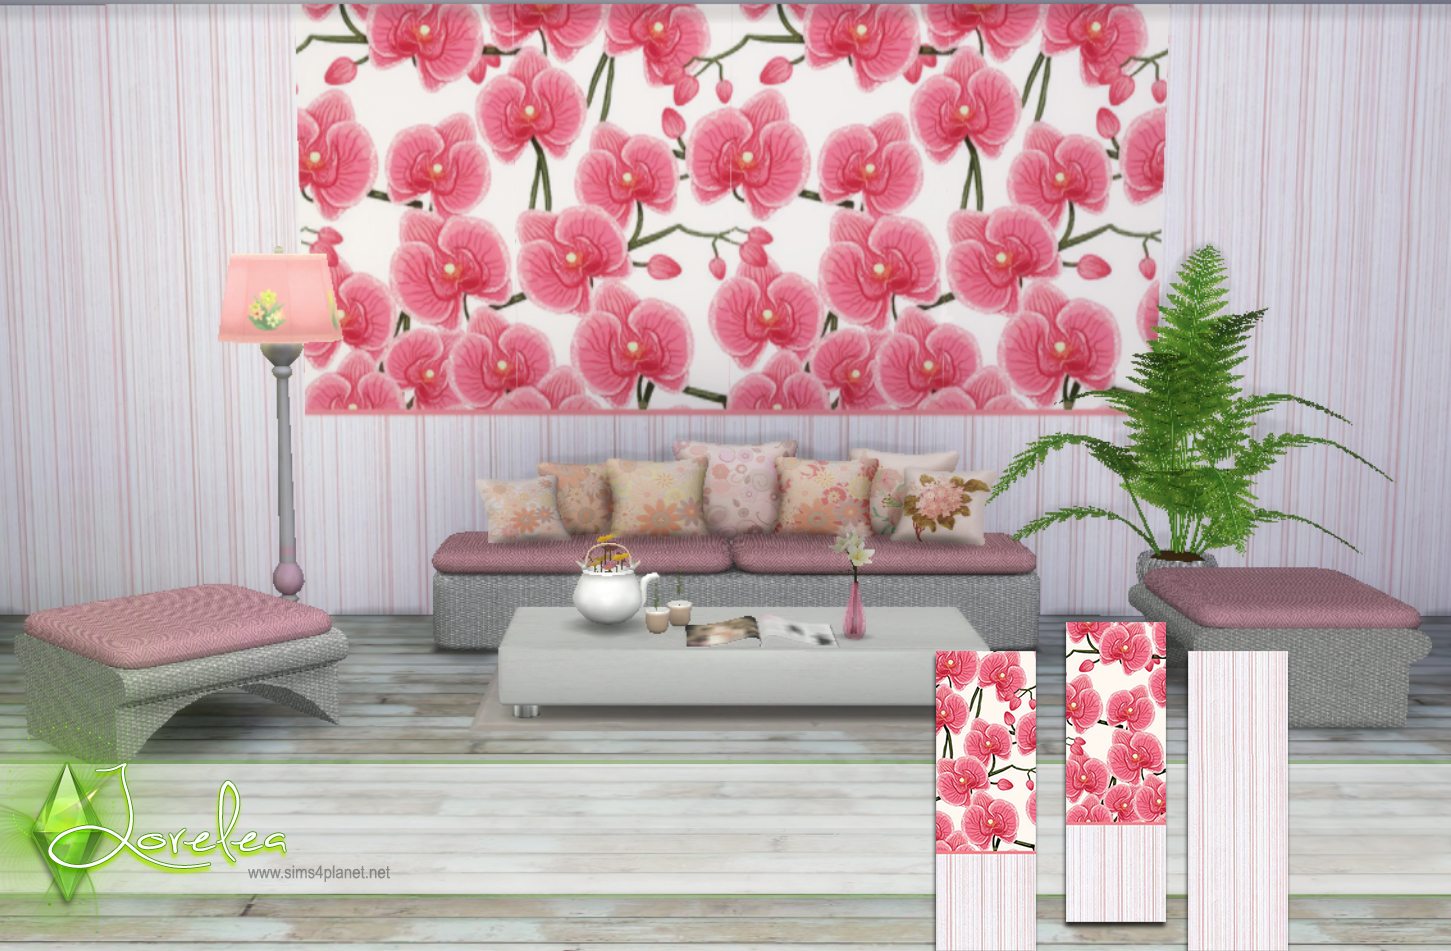 Pink orchids wallpapers by Lorelea